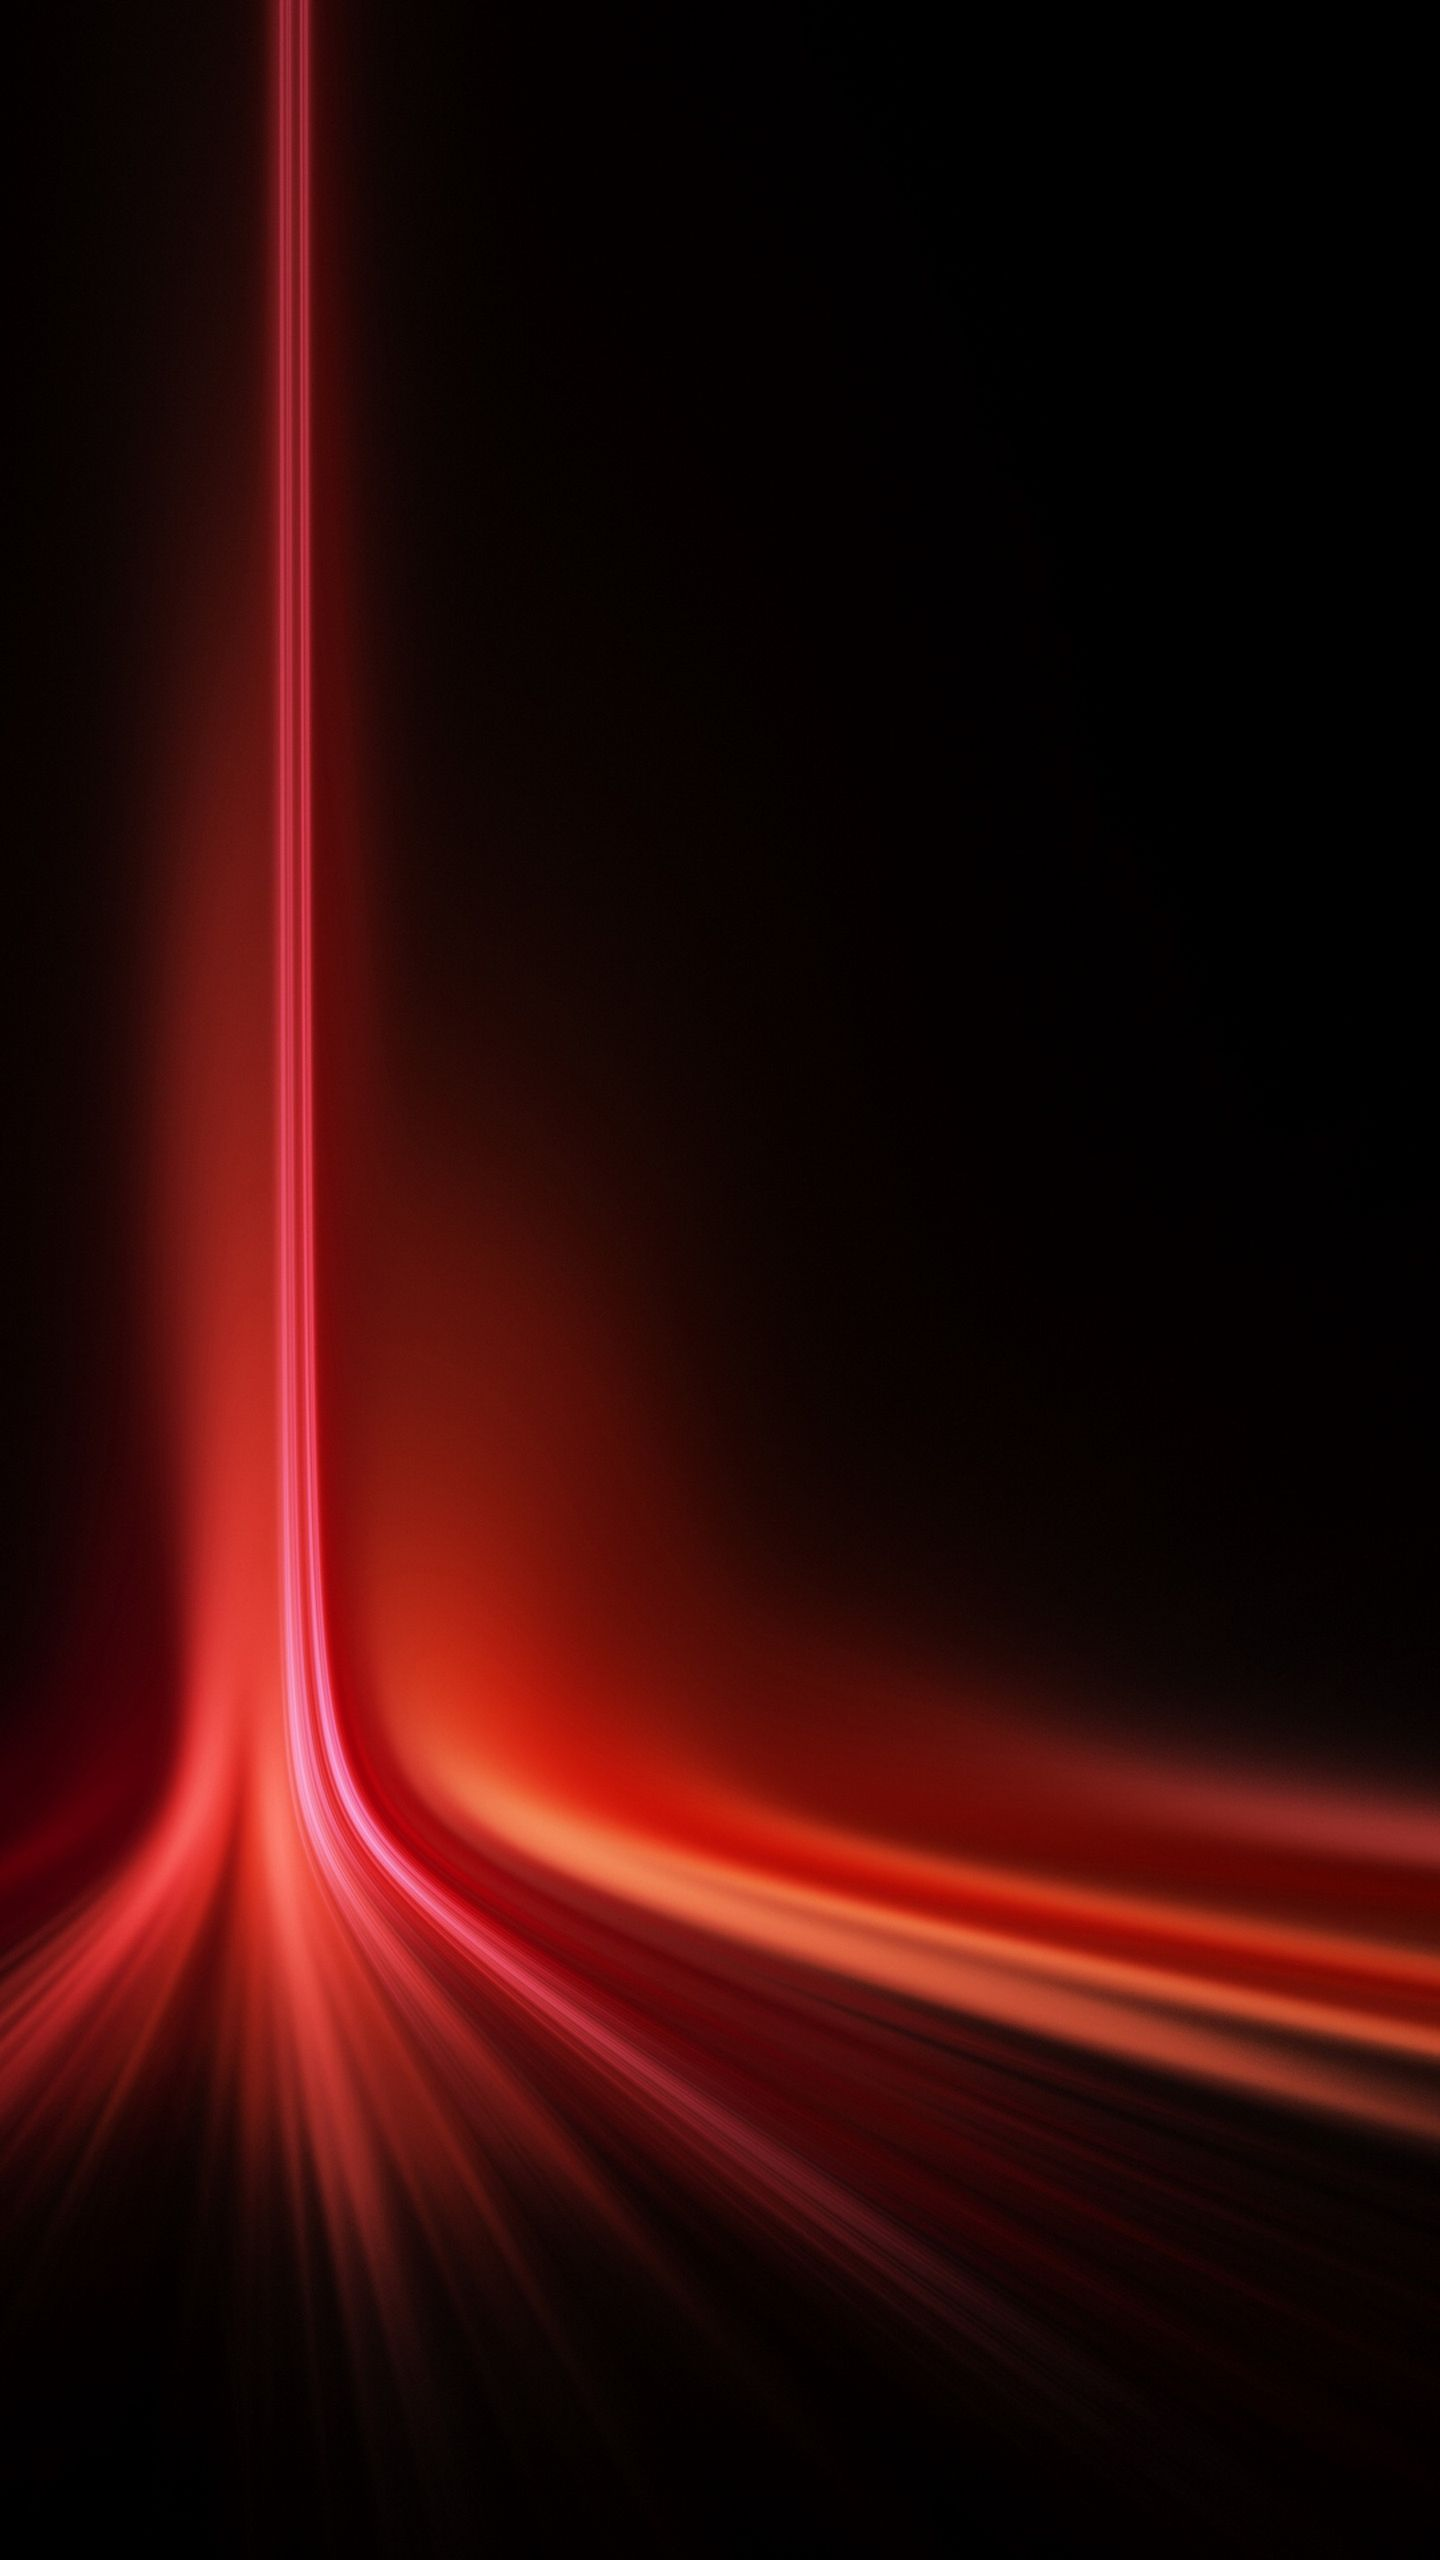 Red Samsung Galaxy Wallpapers Top Free Red Samsung Galaxy Backgrounds Wallpaperaccess